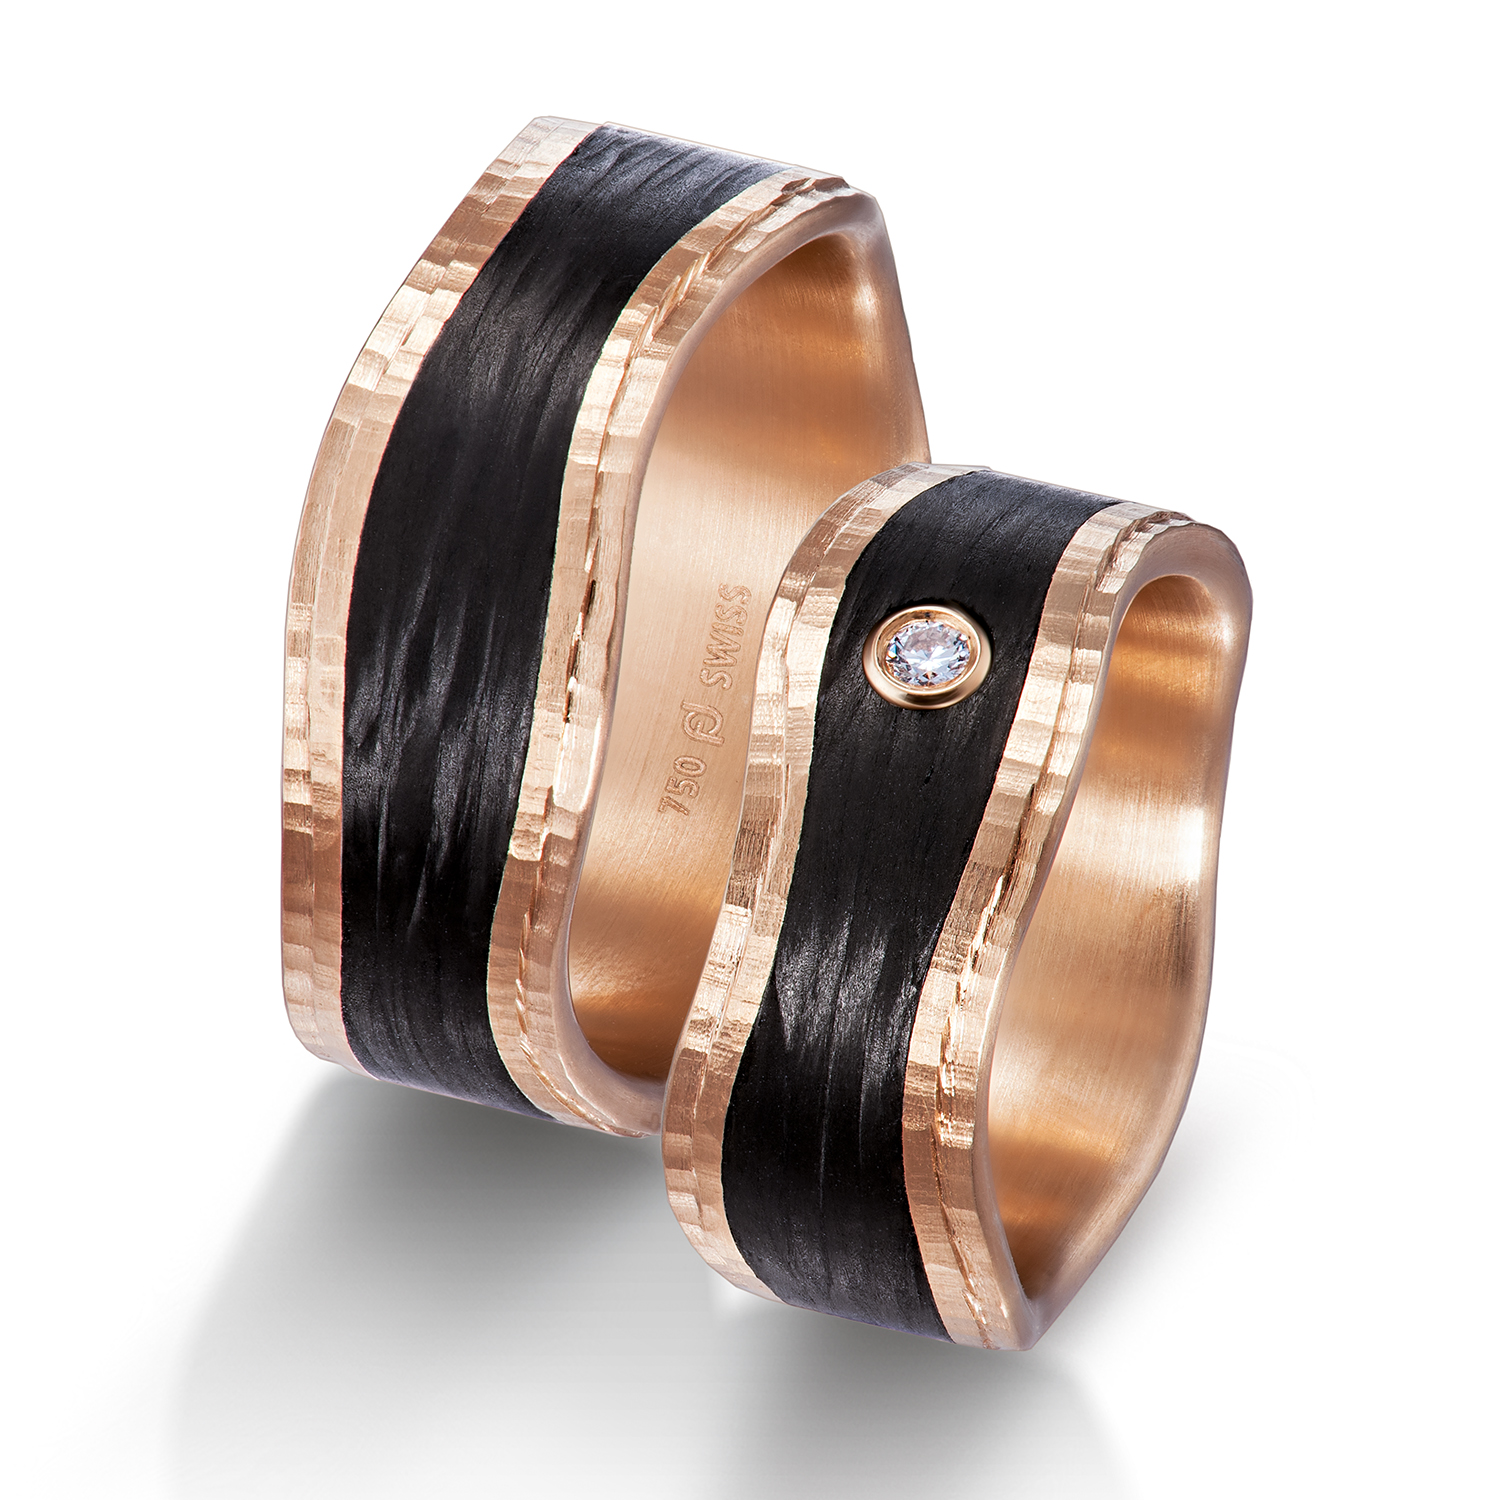 wedding bands, wedding rings, in gold, platinum, palladium, bicolor, with diamonds, carbon, black